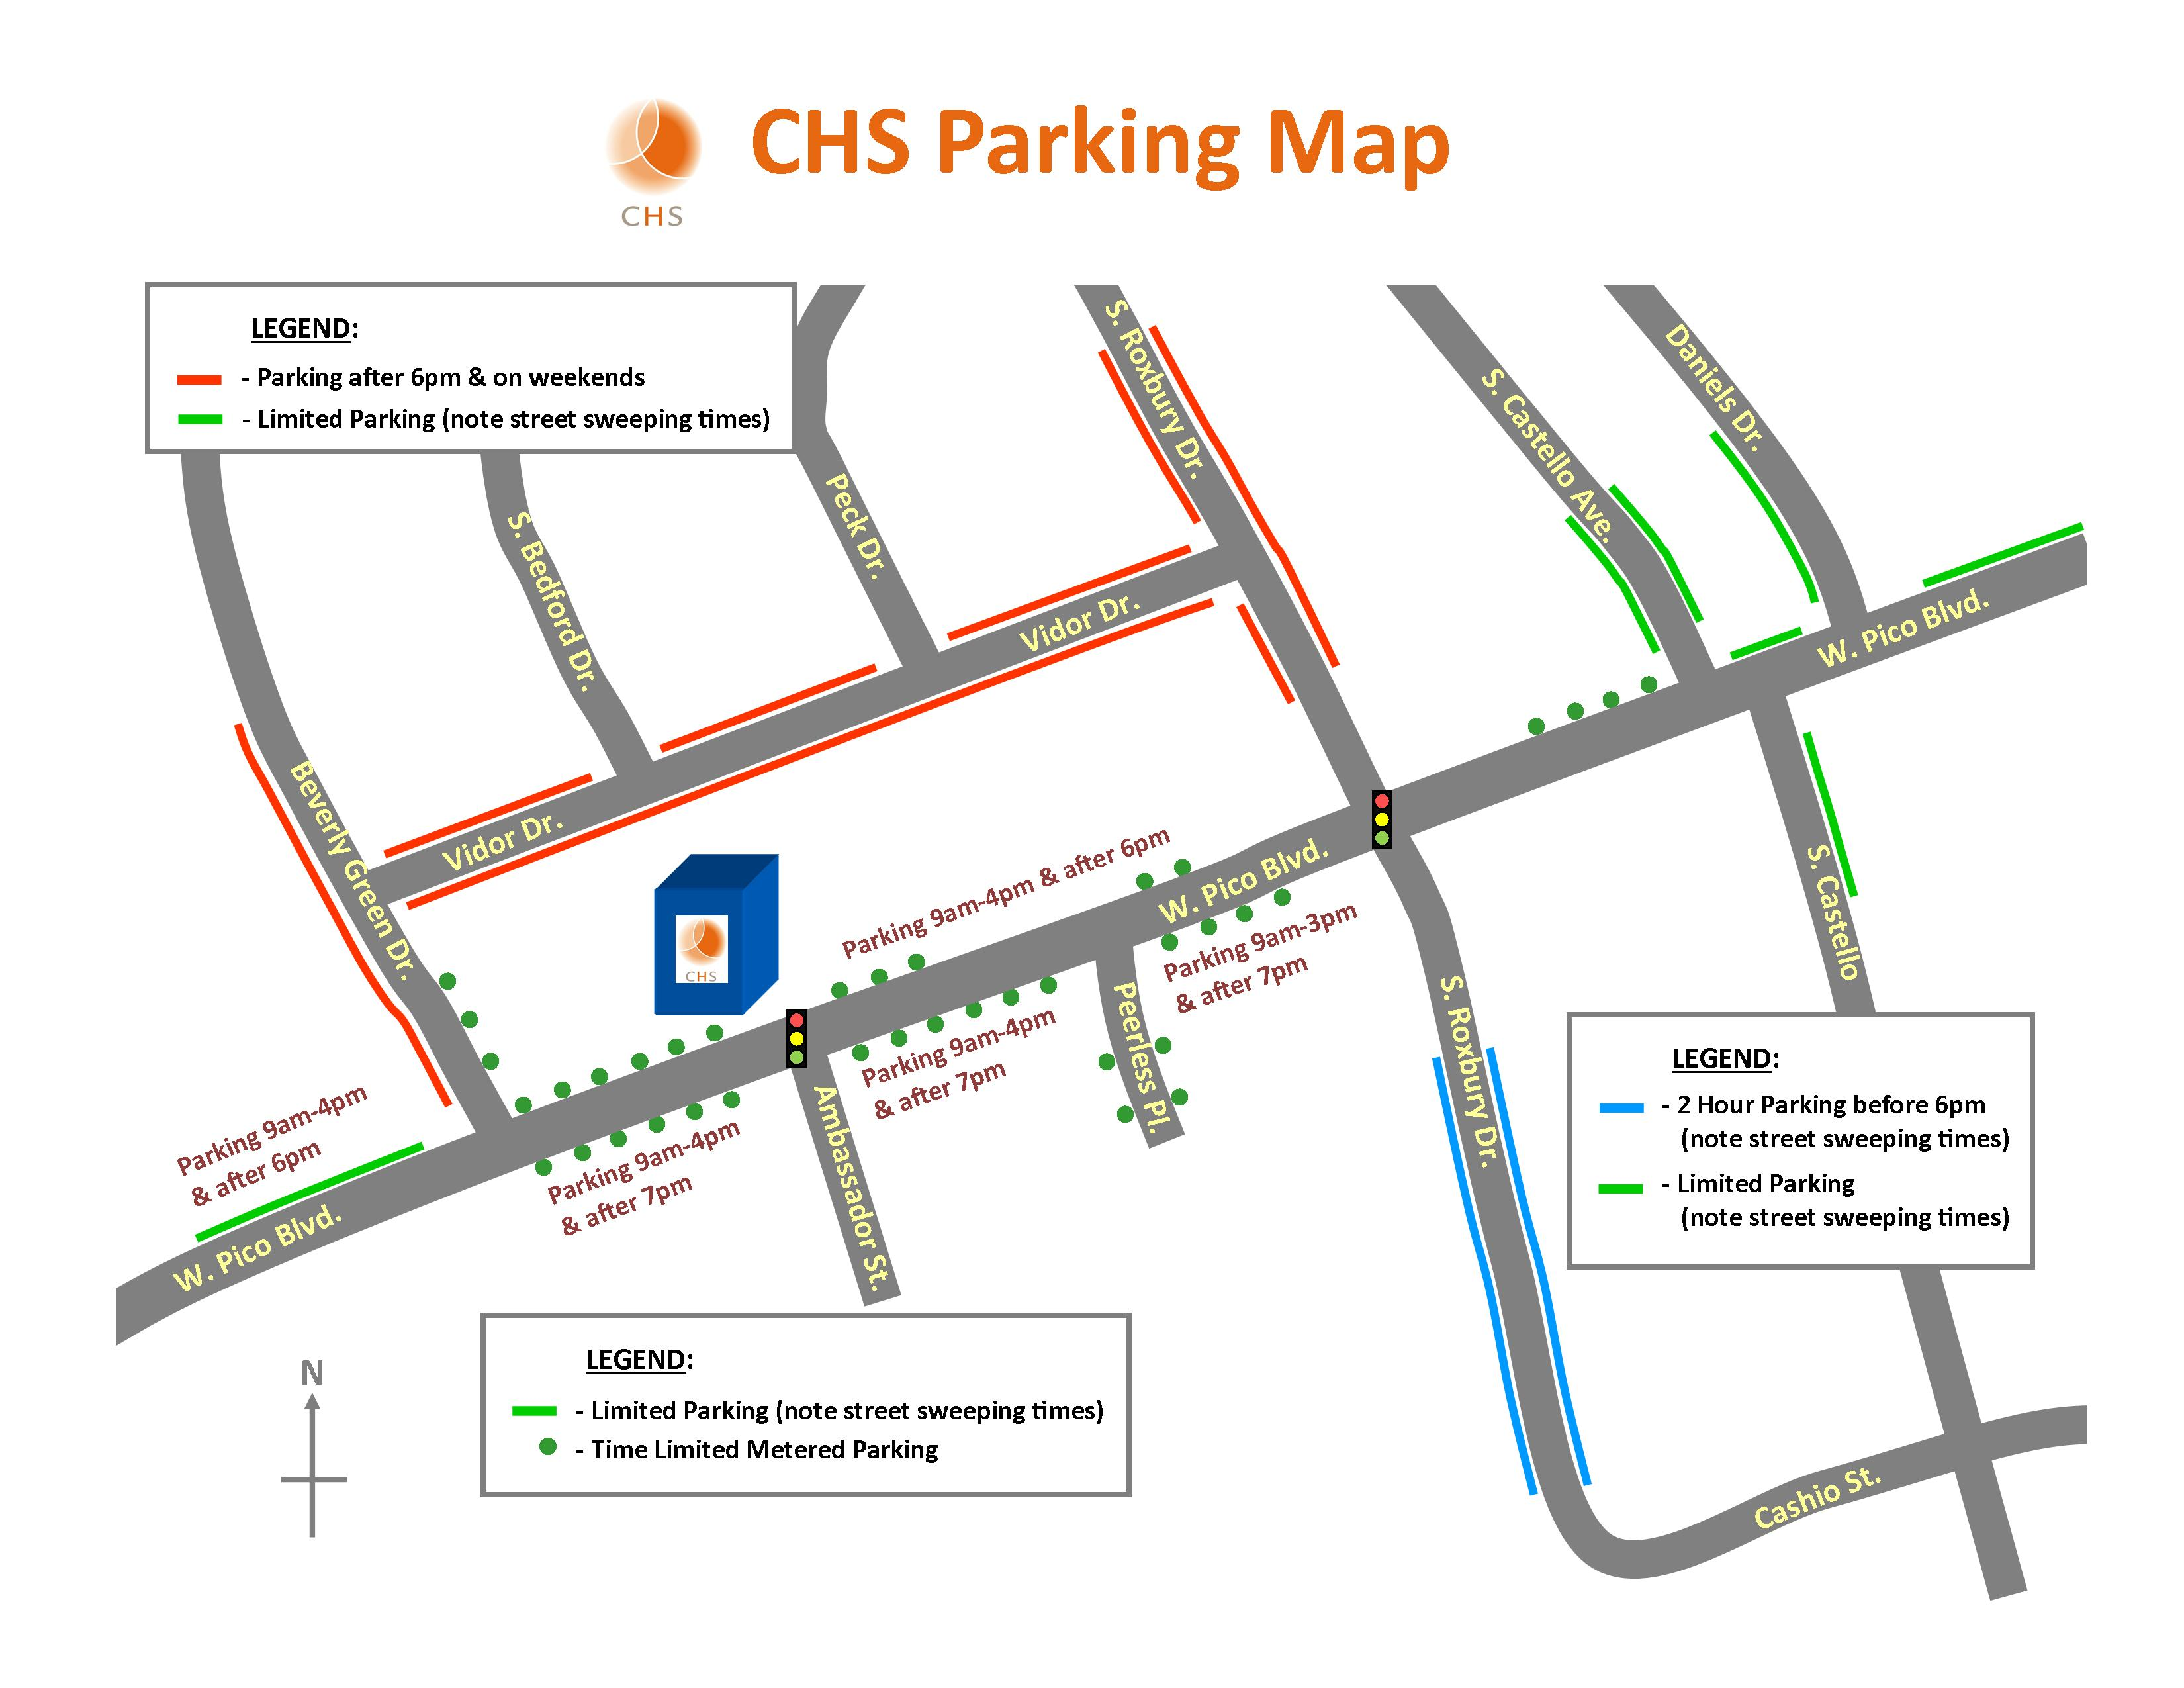 chs parking map